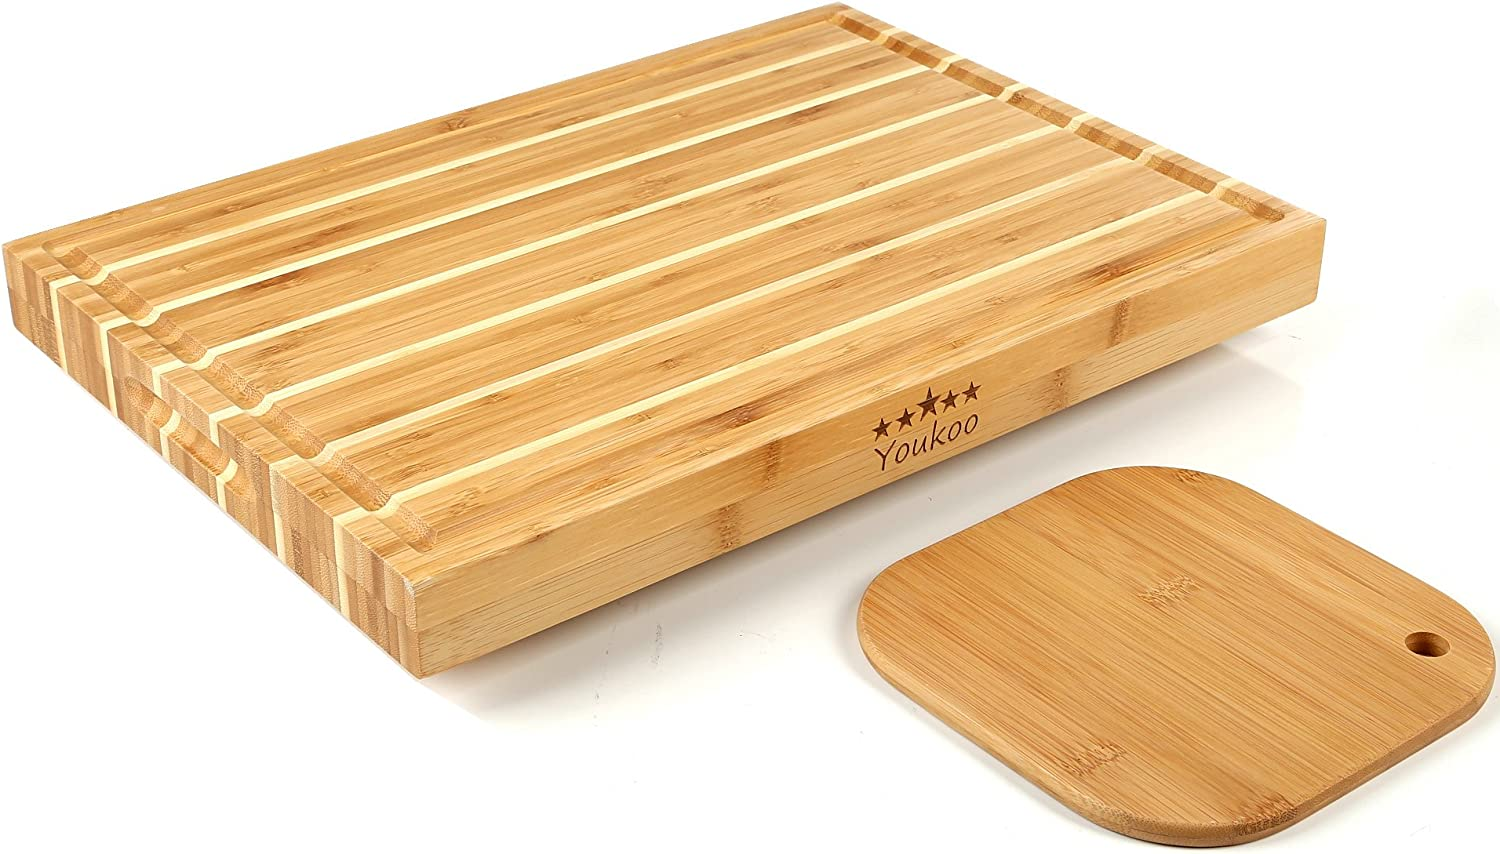 Thick Bamboo Cutting Board Set, Large Butcher Chopping Block & Serving Tray with Wooden Feet